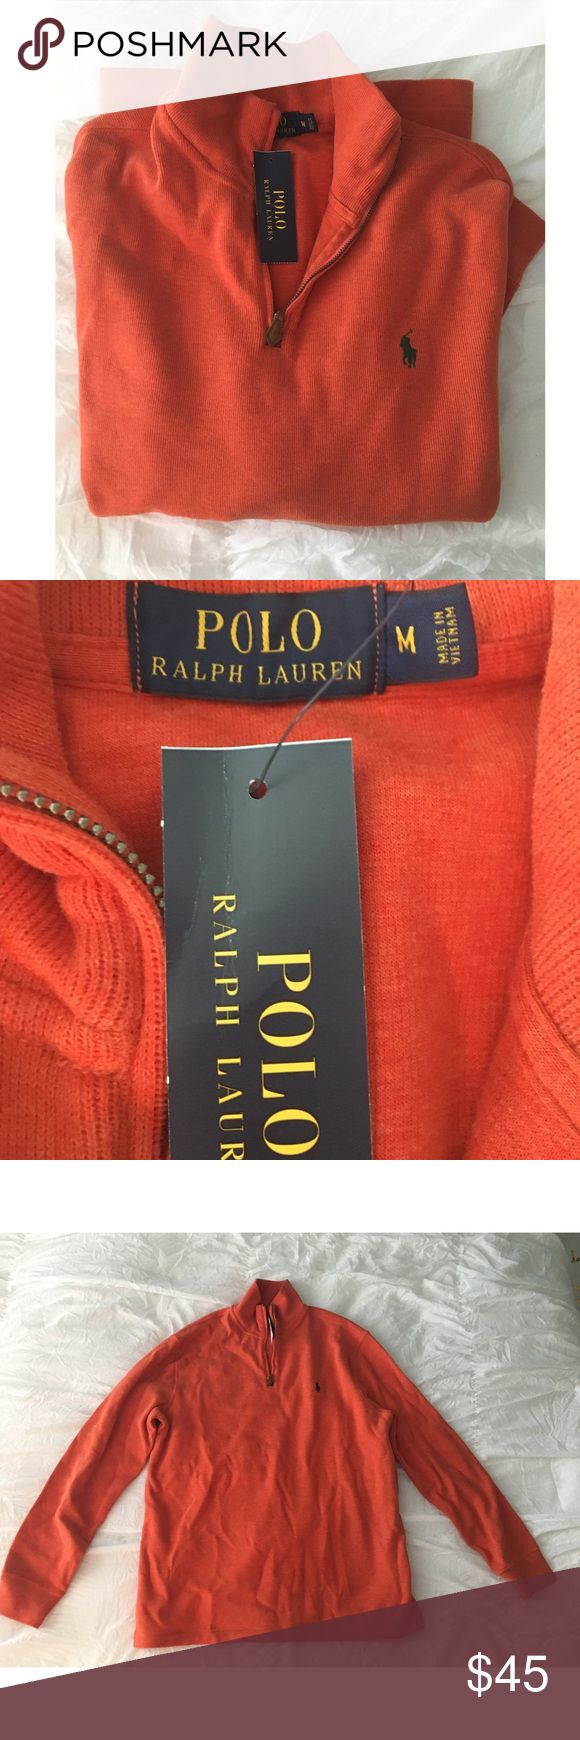 NWT Polo Pullover/Quarter Zip NWT Polo Pullover/Quarter Zip size medium let me know if you have any questions! Polo by Ralph Lauren Sweaters